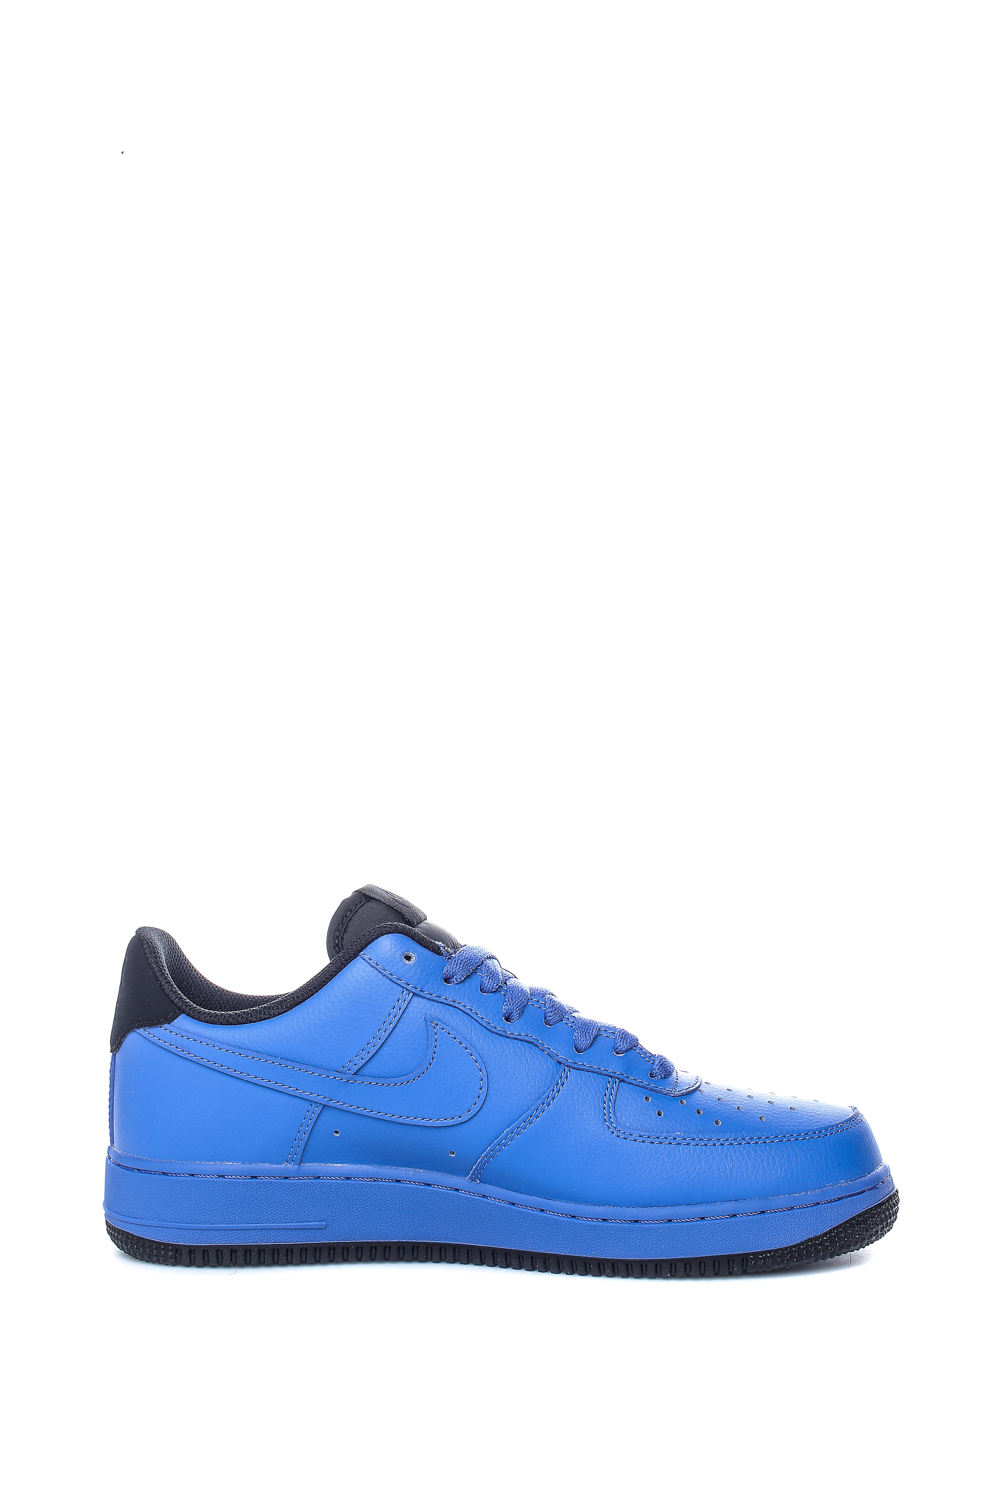 NIKE – Ανδρικά παπούτσια NIKE AIR FORCE 1 '07 μπλε